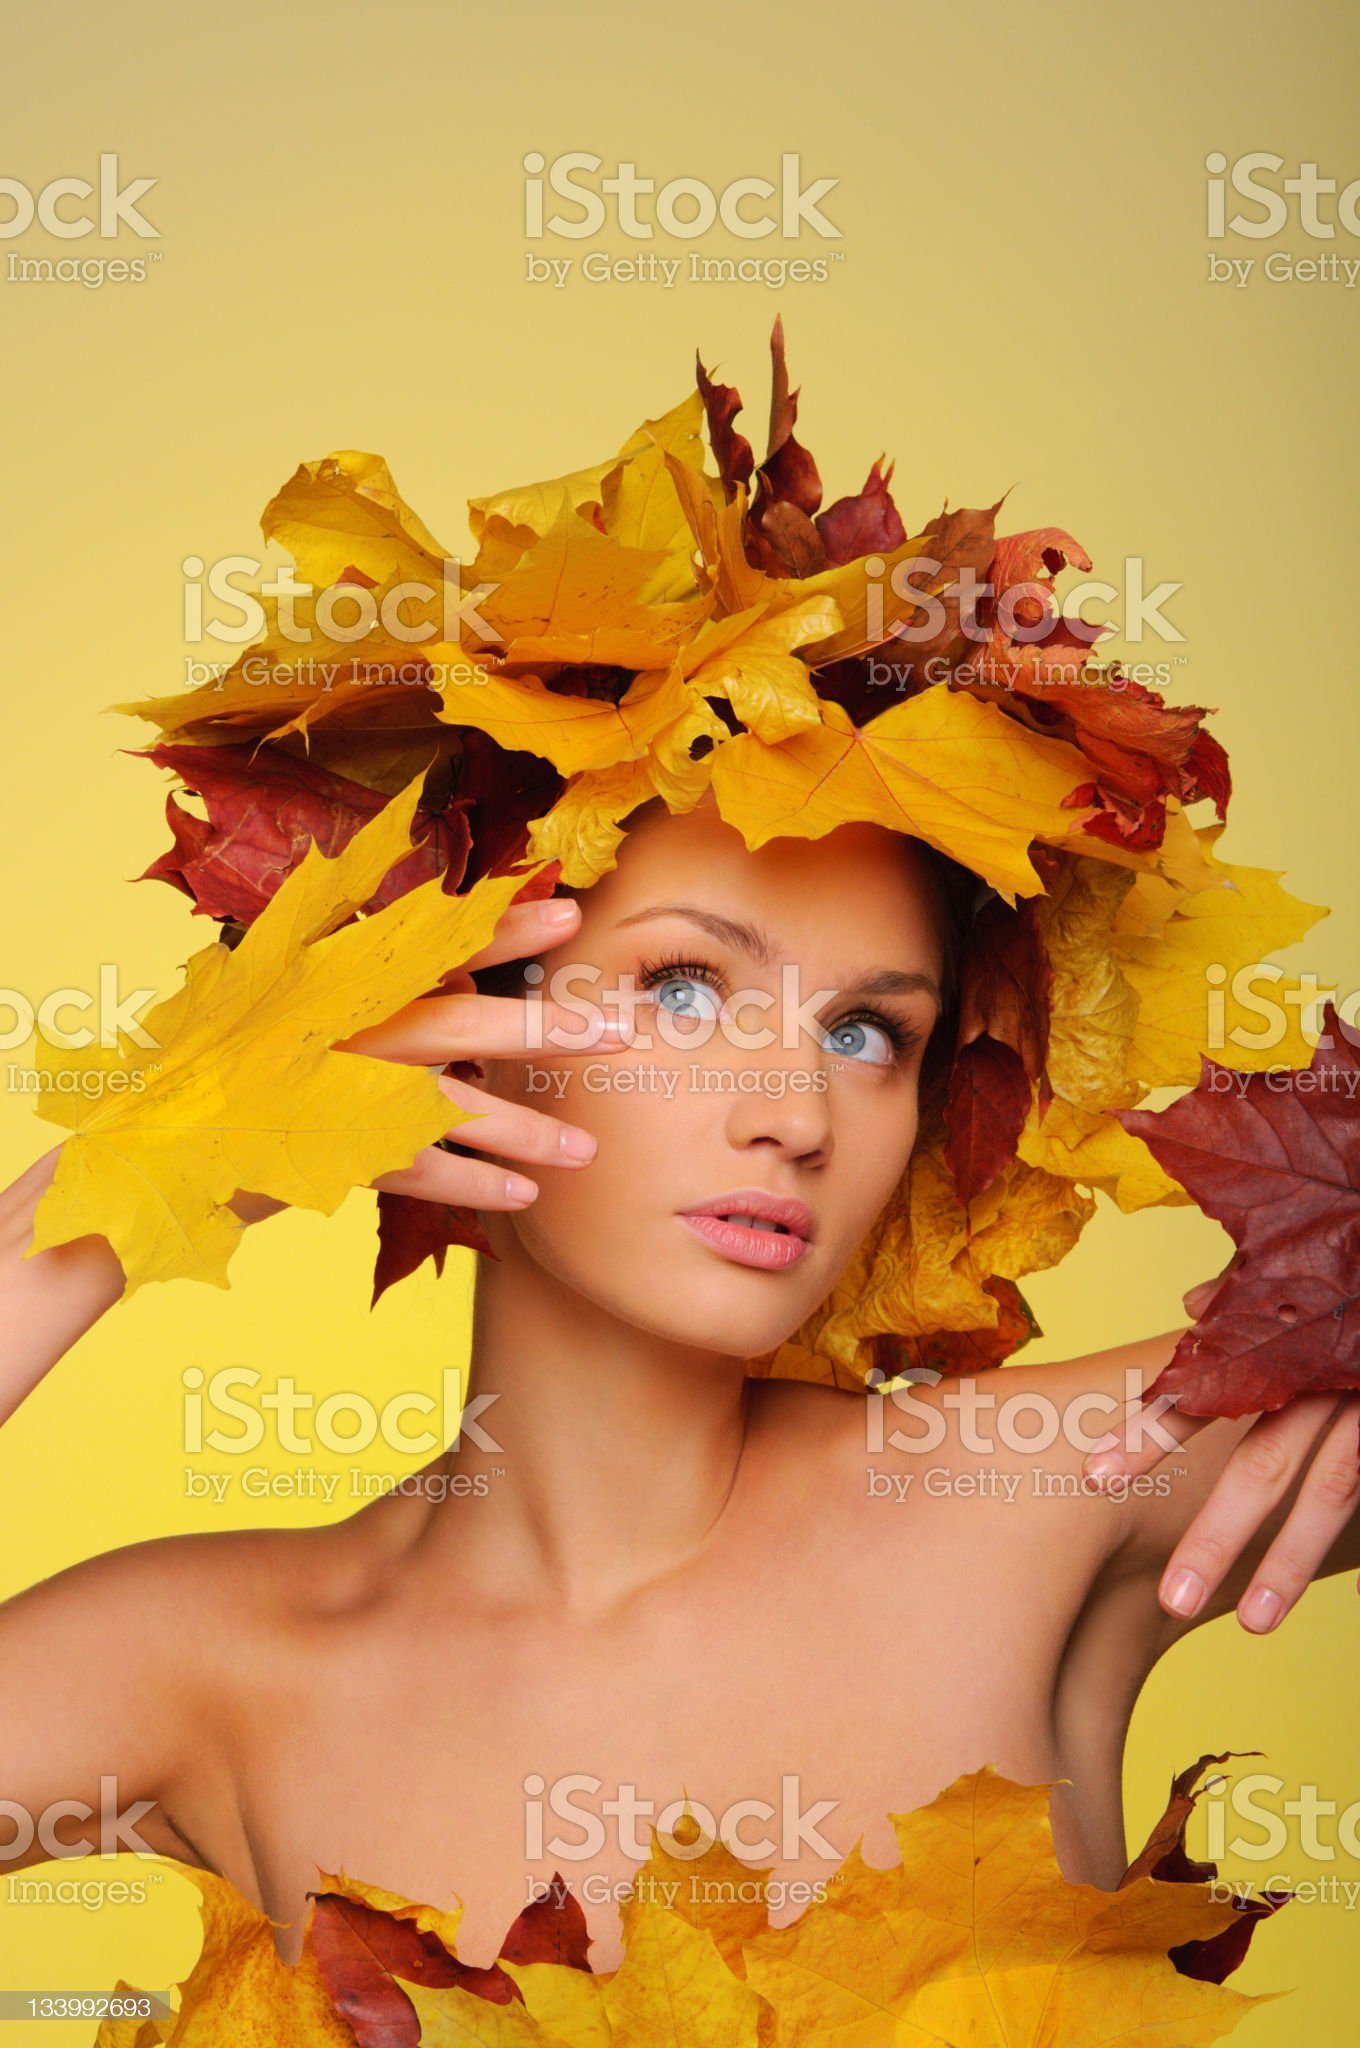 Beautiful woman with autumn leaves royalty-free stock photo